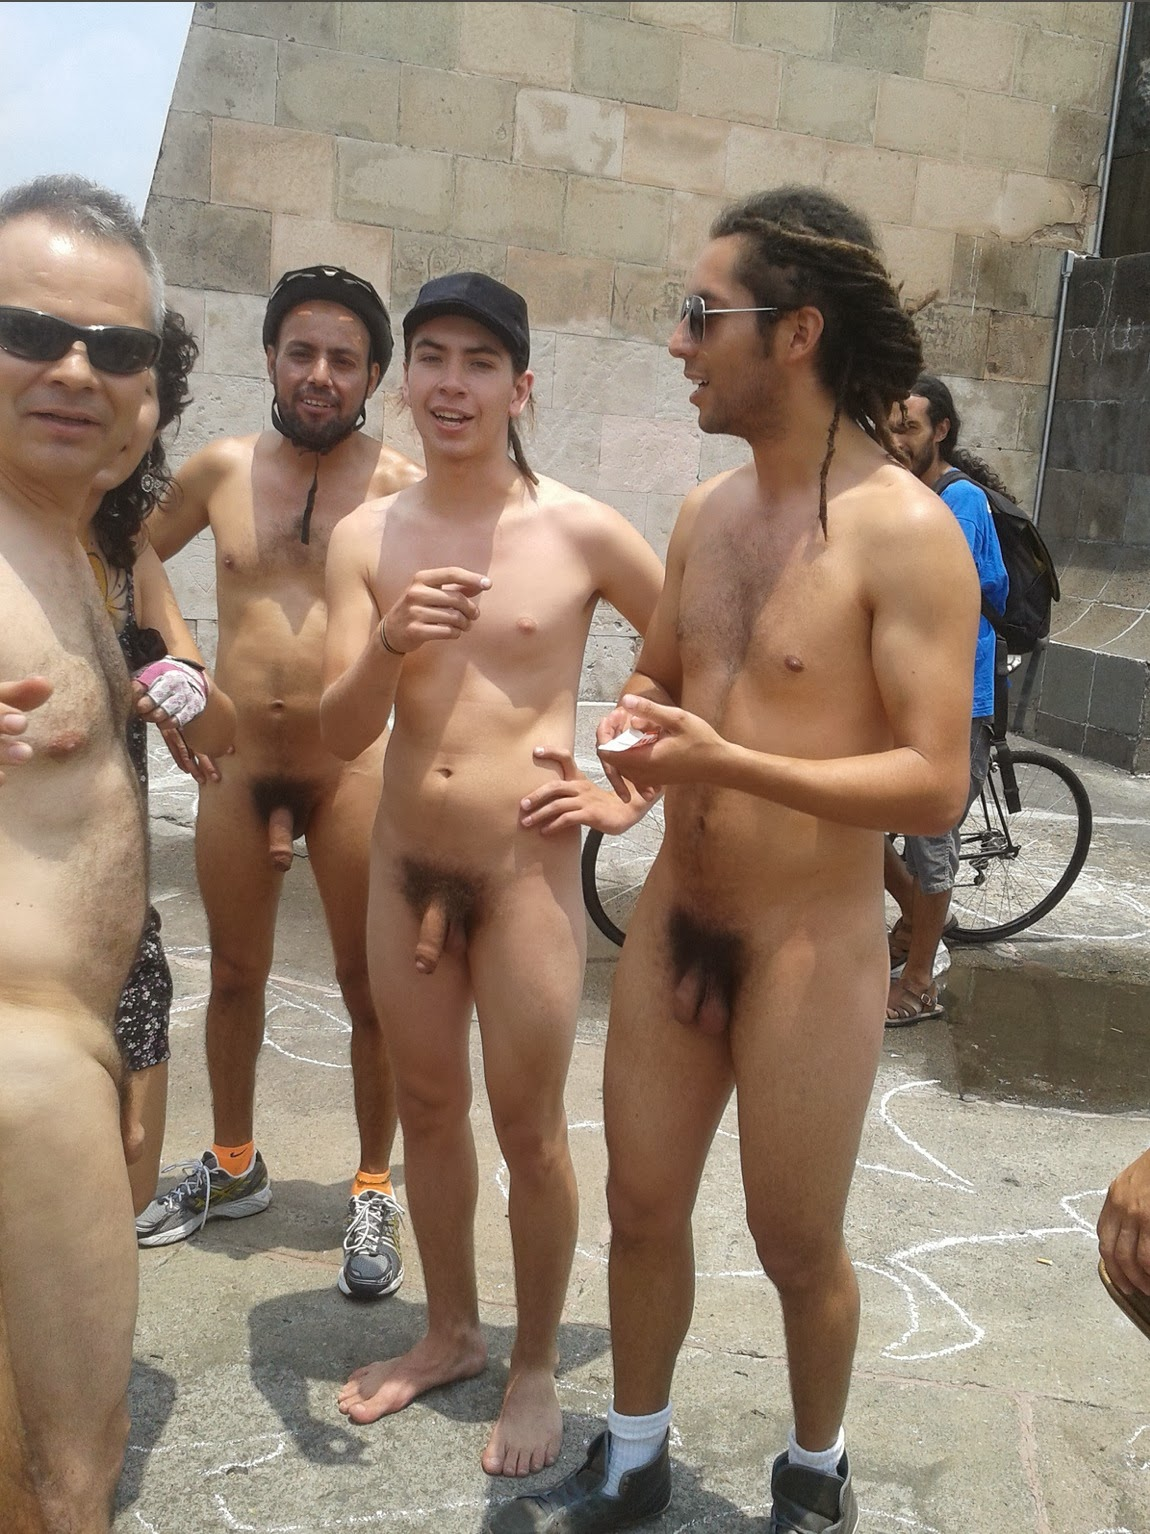 Beautiful young nudists pictures  family nudism gallery